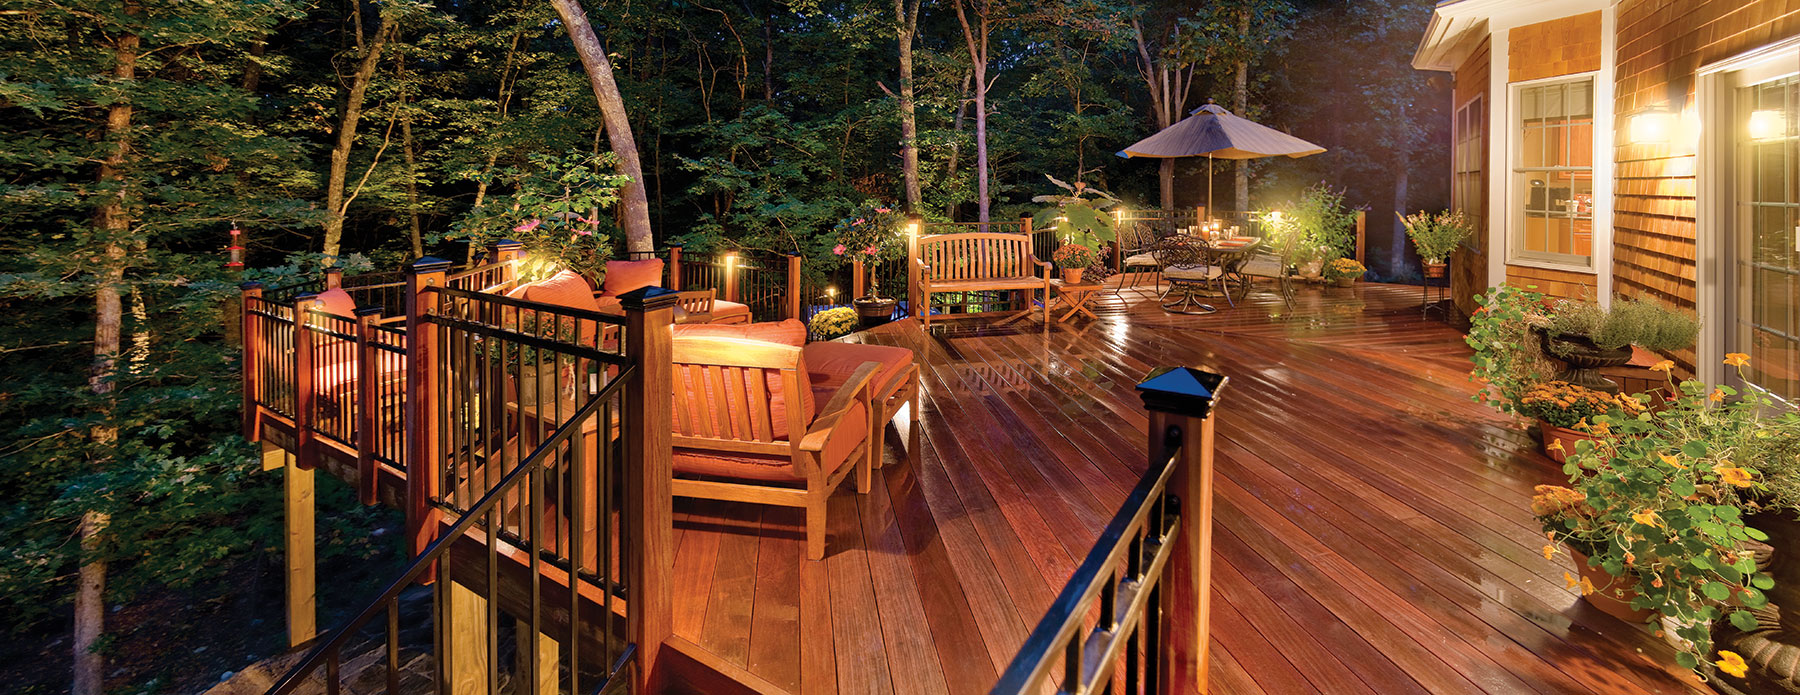 Weu0027ll Work With Your Deck Builder To Install The Best Minneapolis Deck  Lighting.